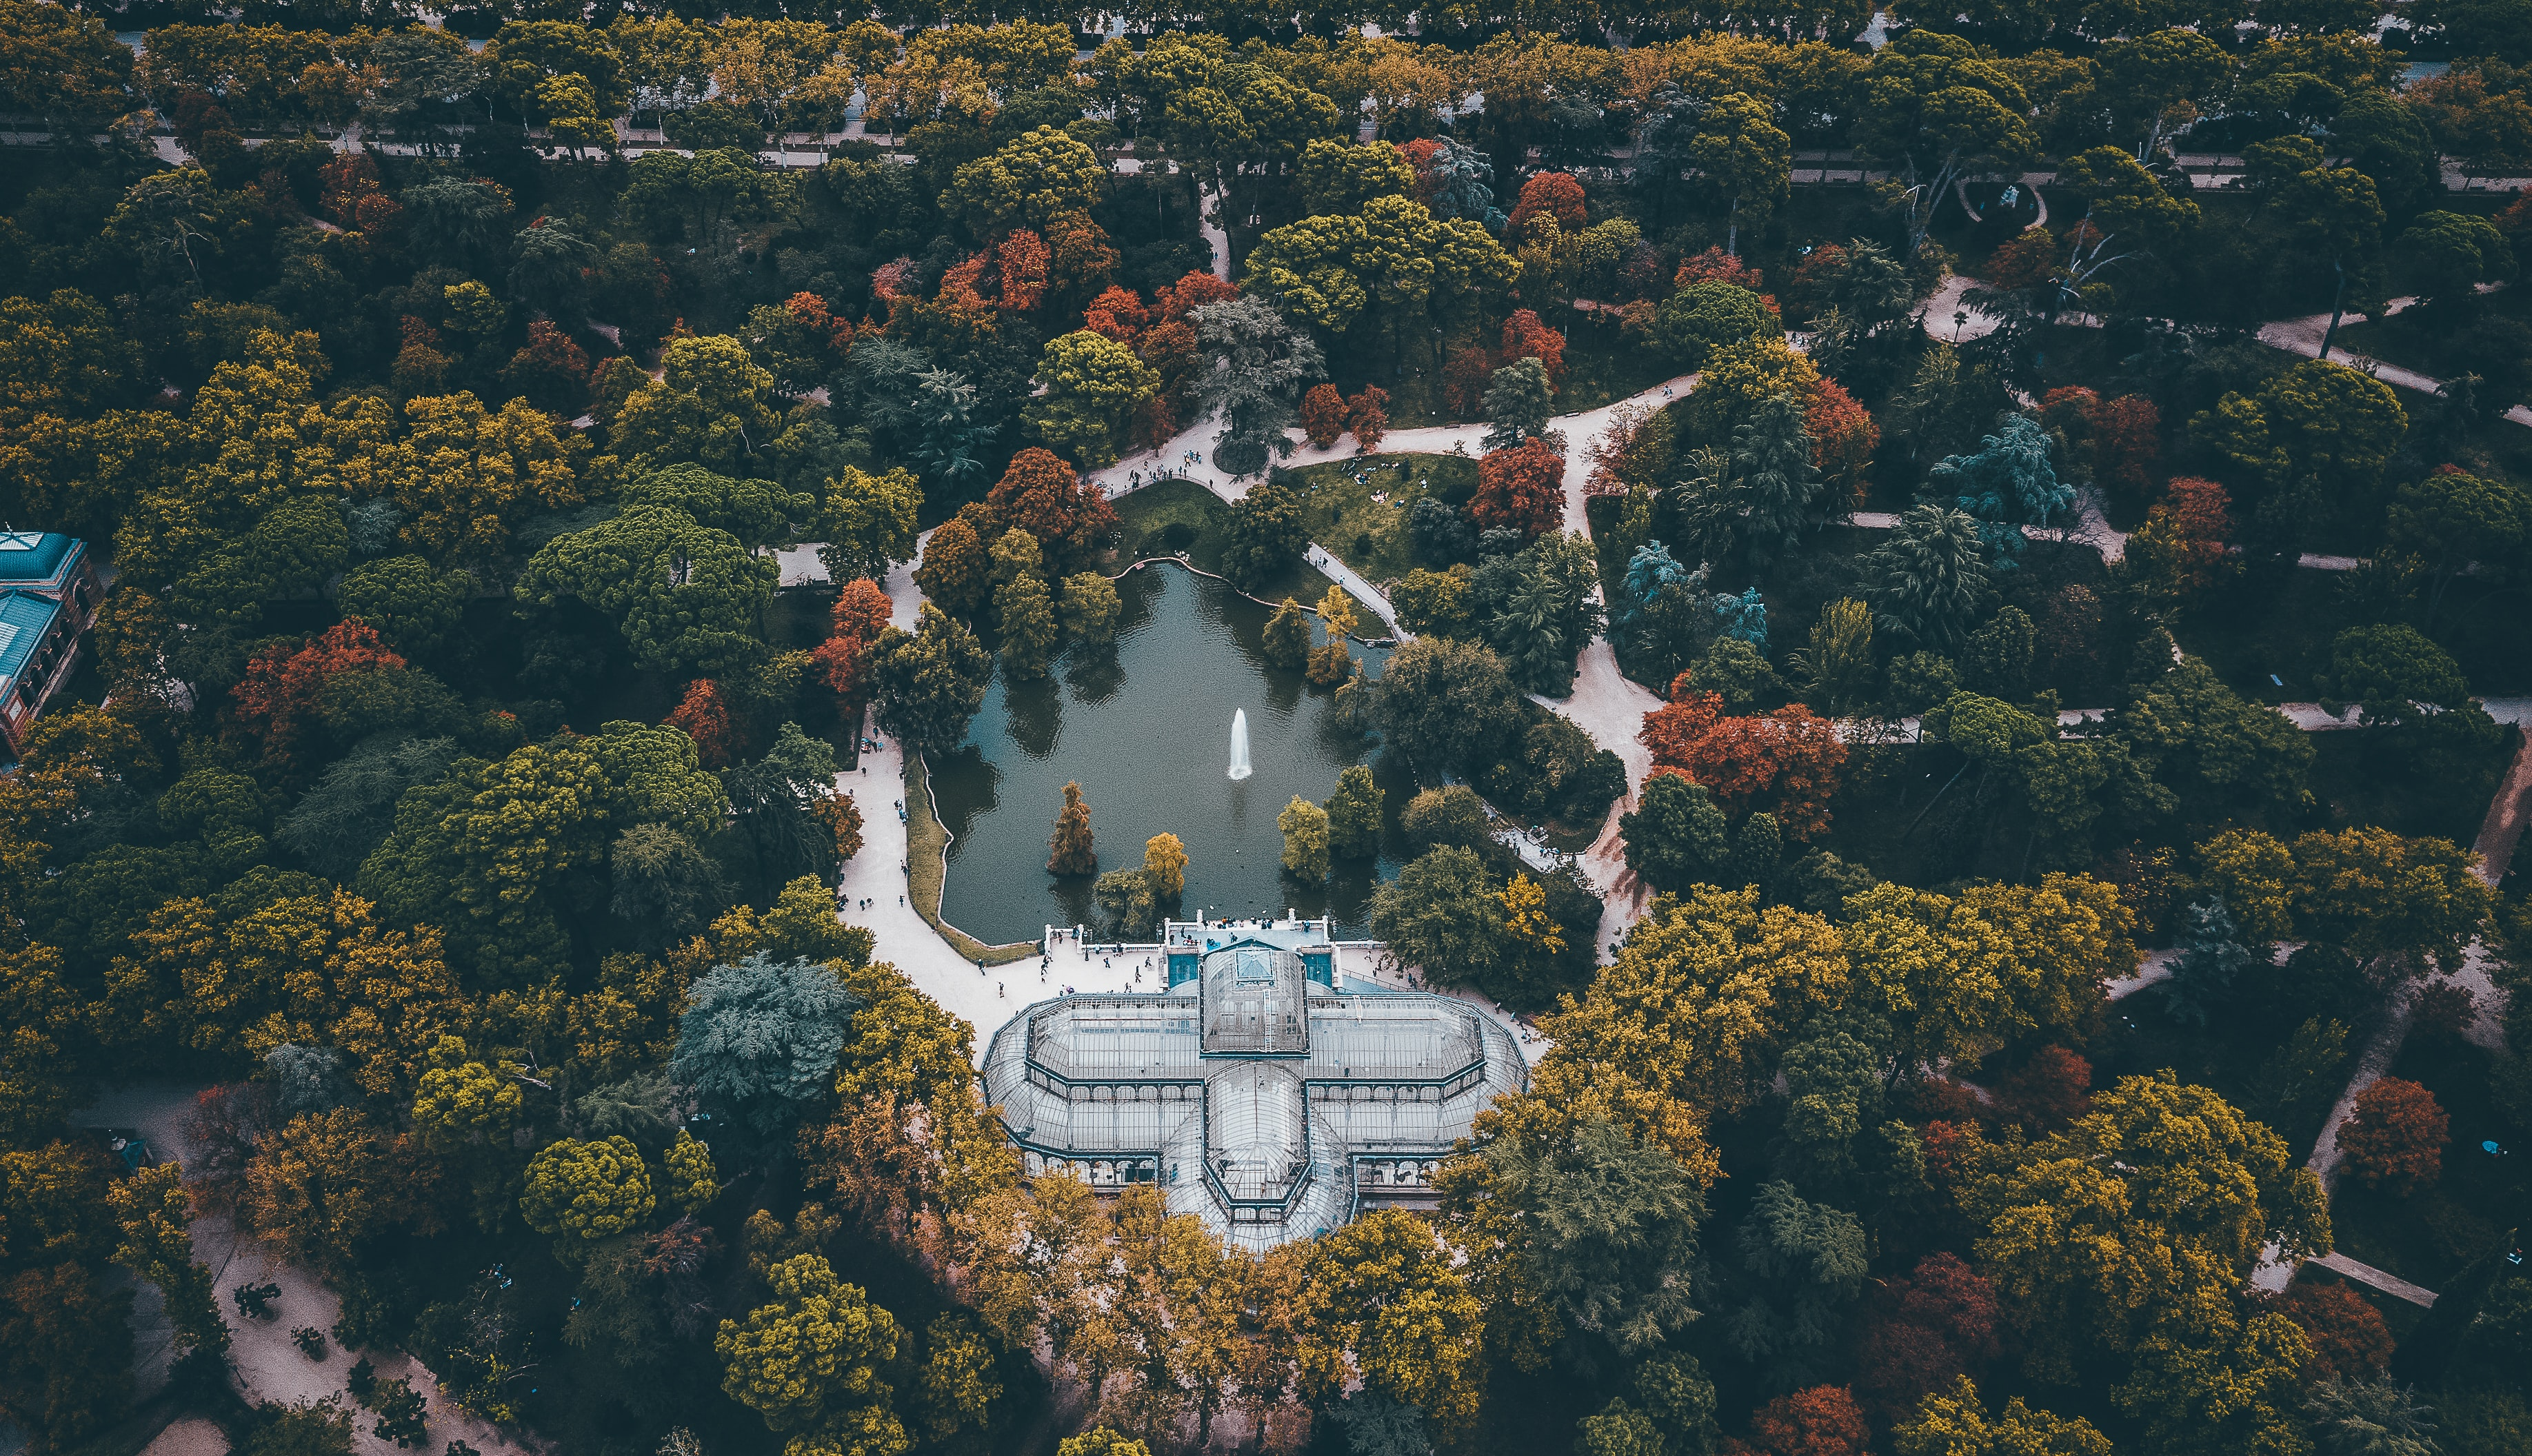 aerial view of white building surround trees